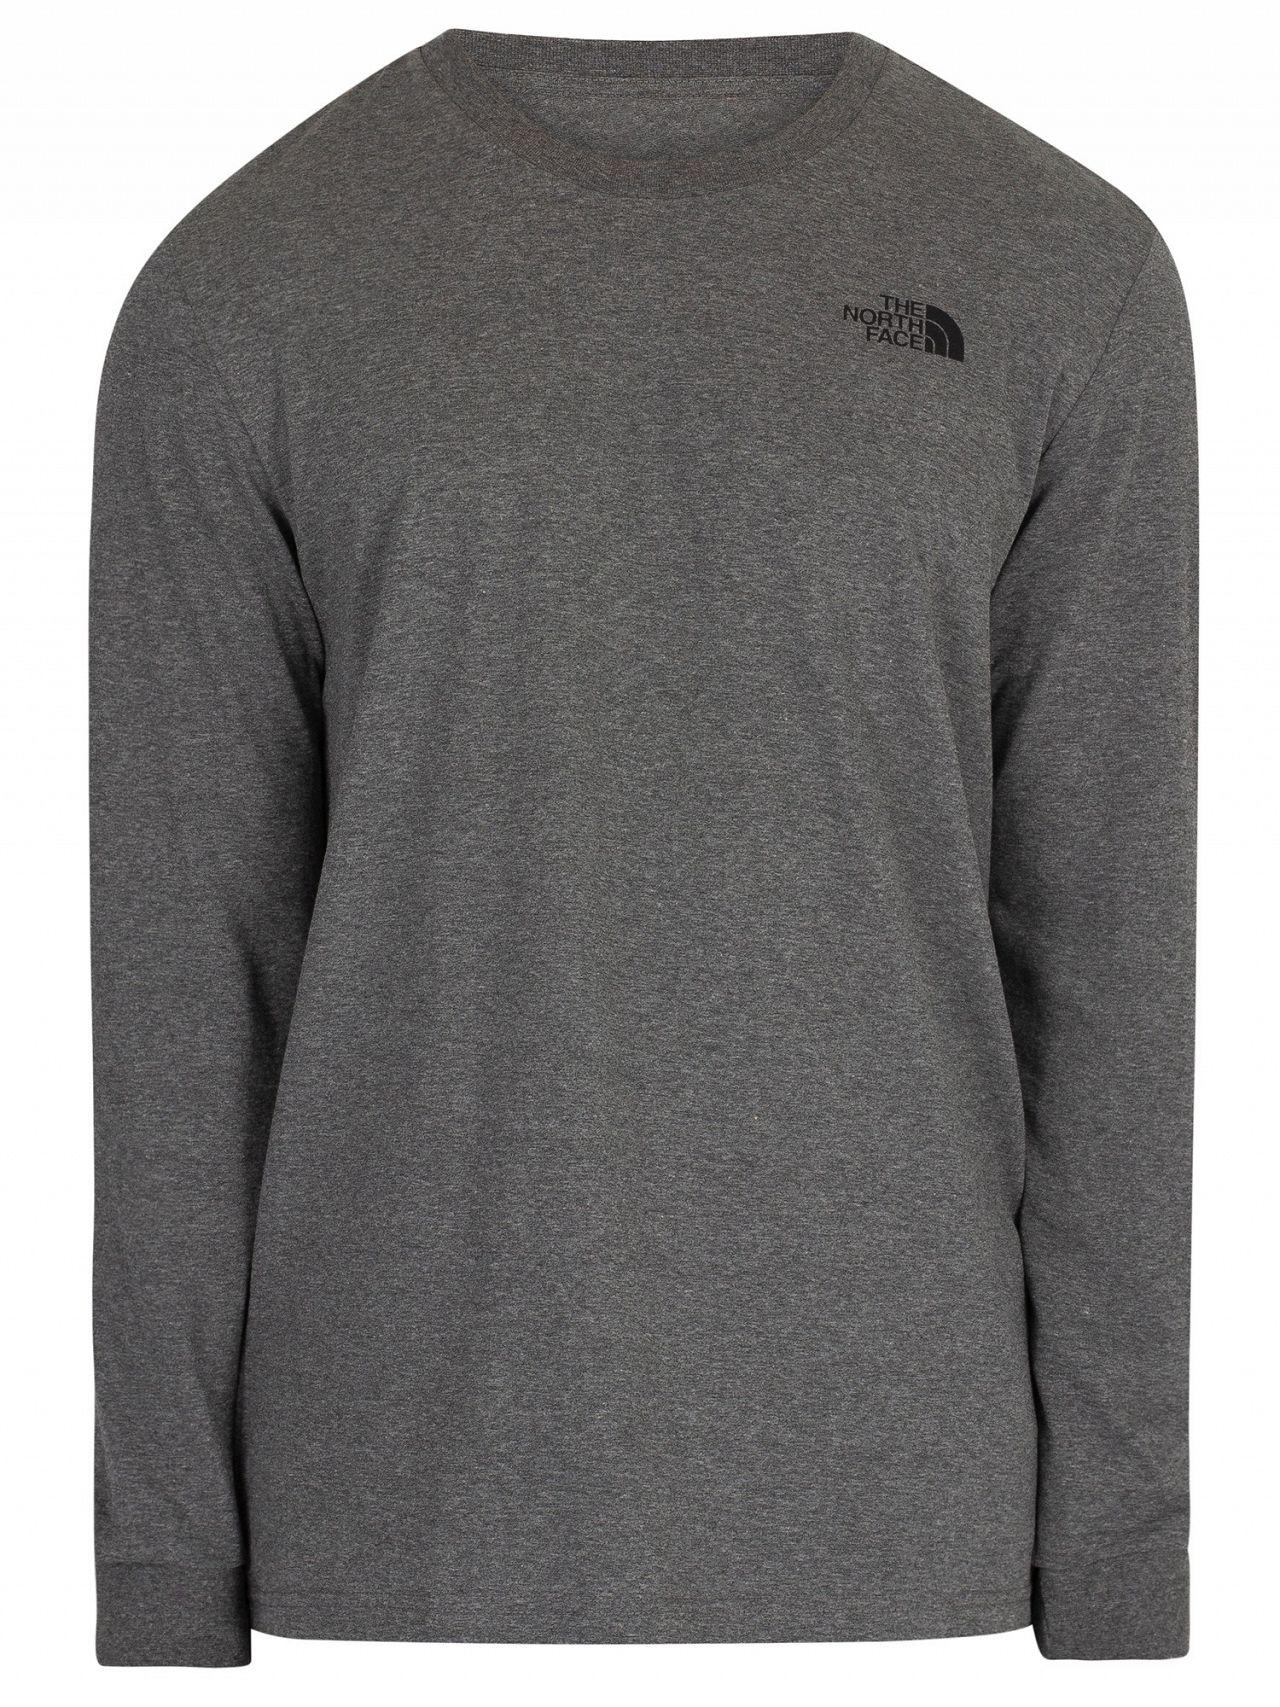 b353df4f9f4 The North Face Men s Simple Dome Longsleeved T-shirt